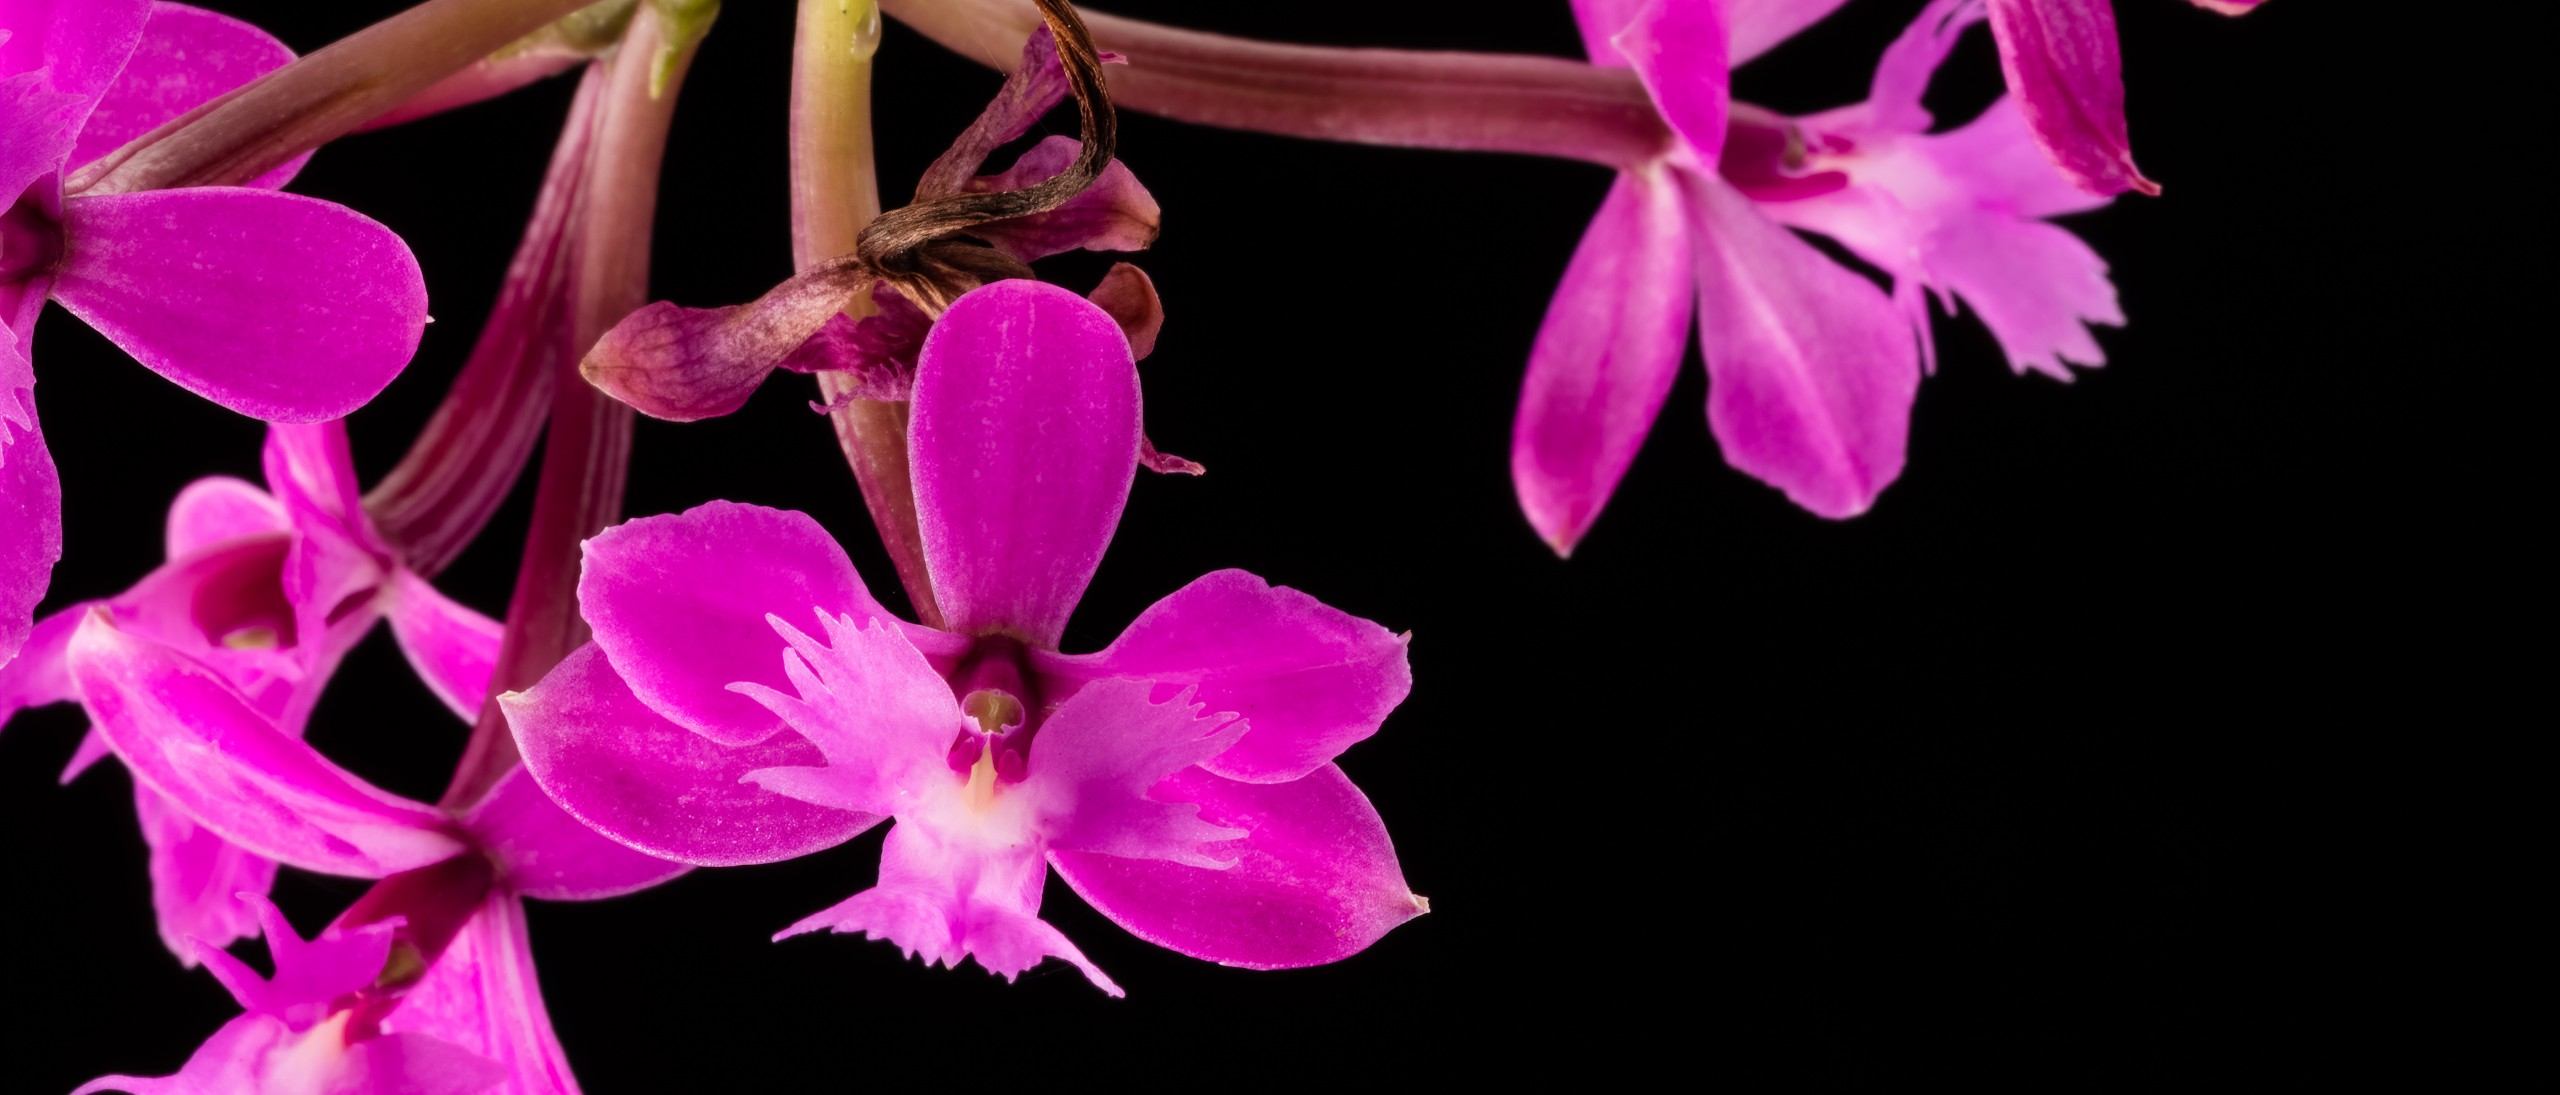 Small purple-pink orchid flowers on stem on black background